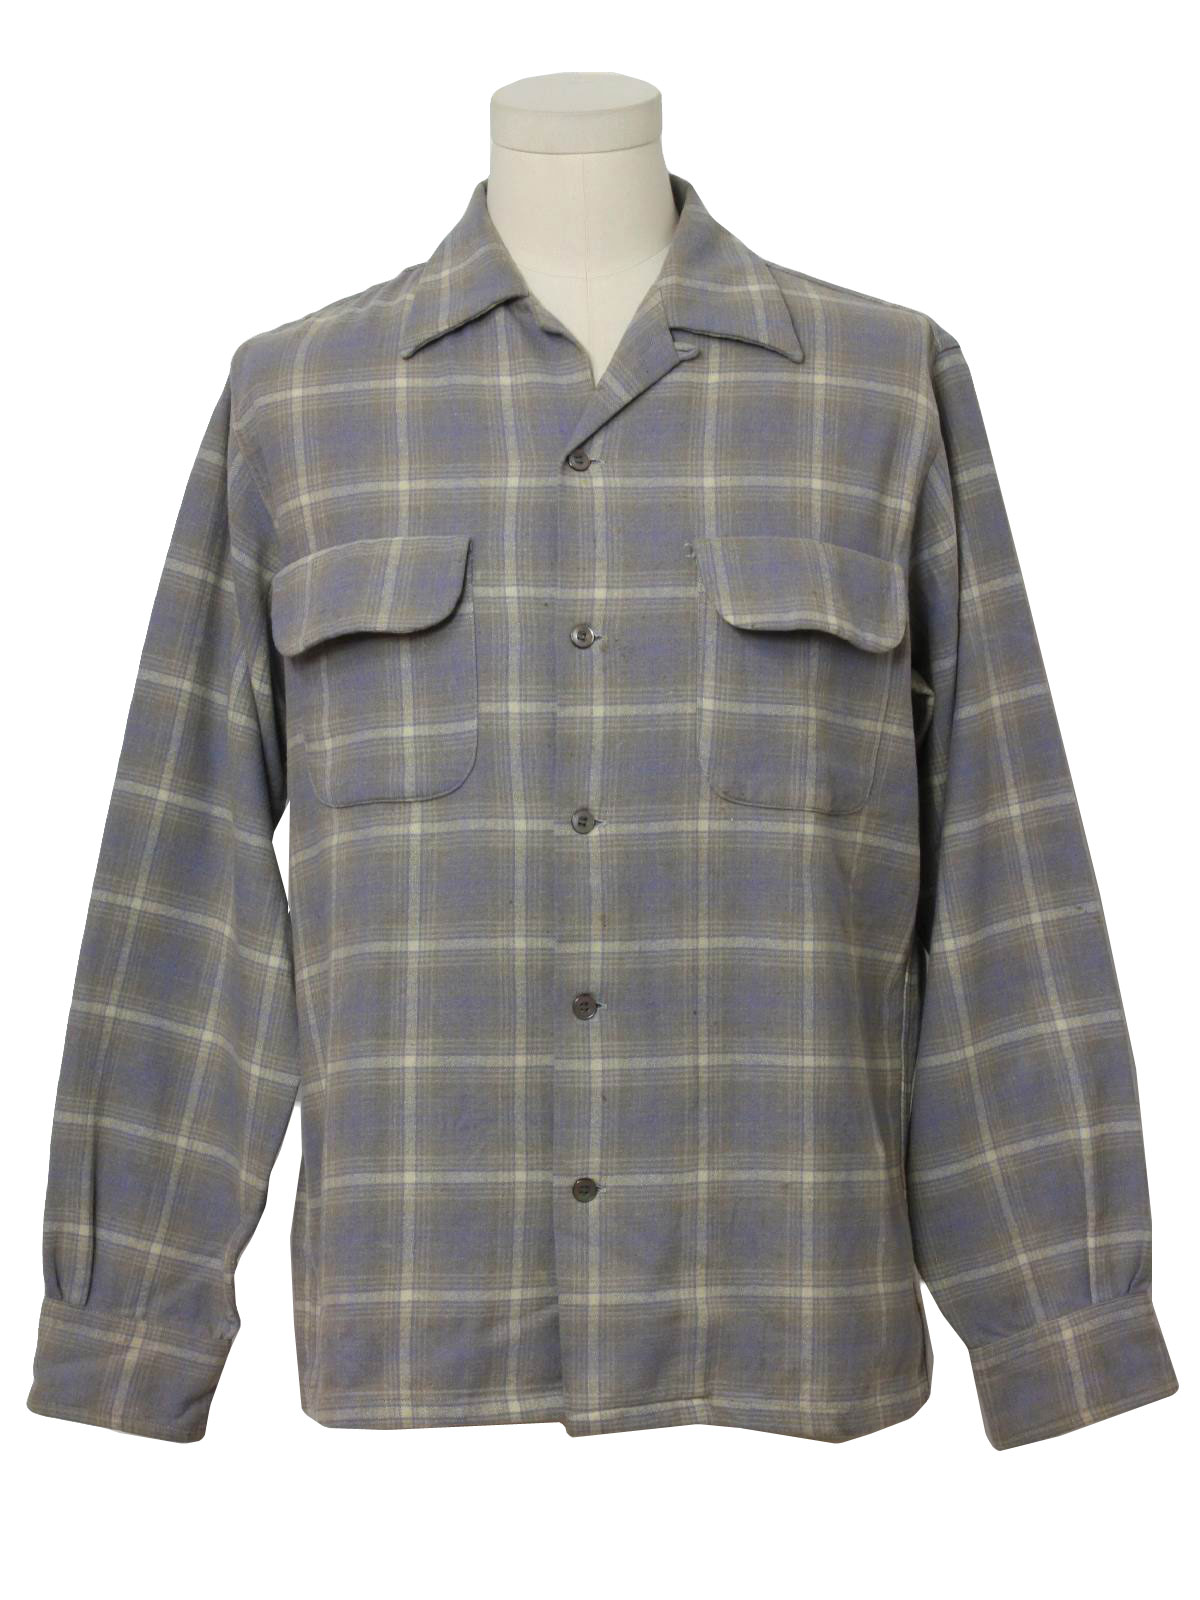 Fifties Gabardine Shirt Late 40s Early 50s Levis Deluxe